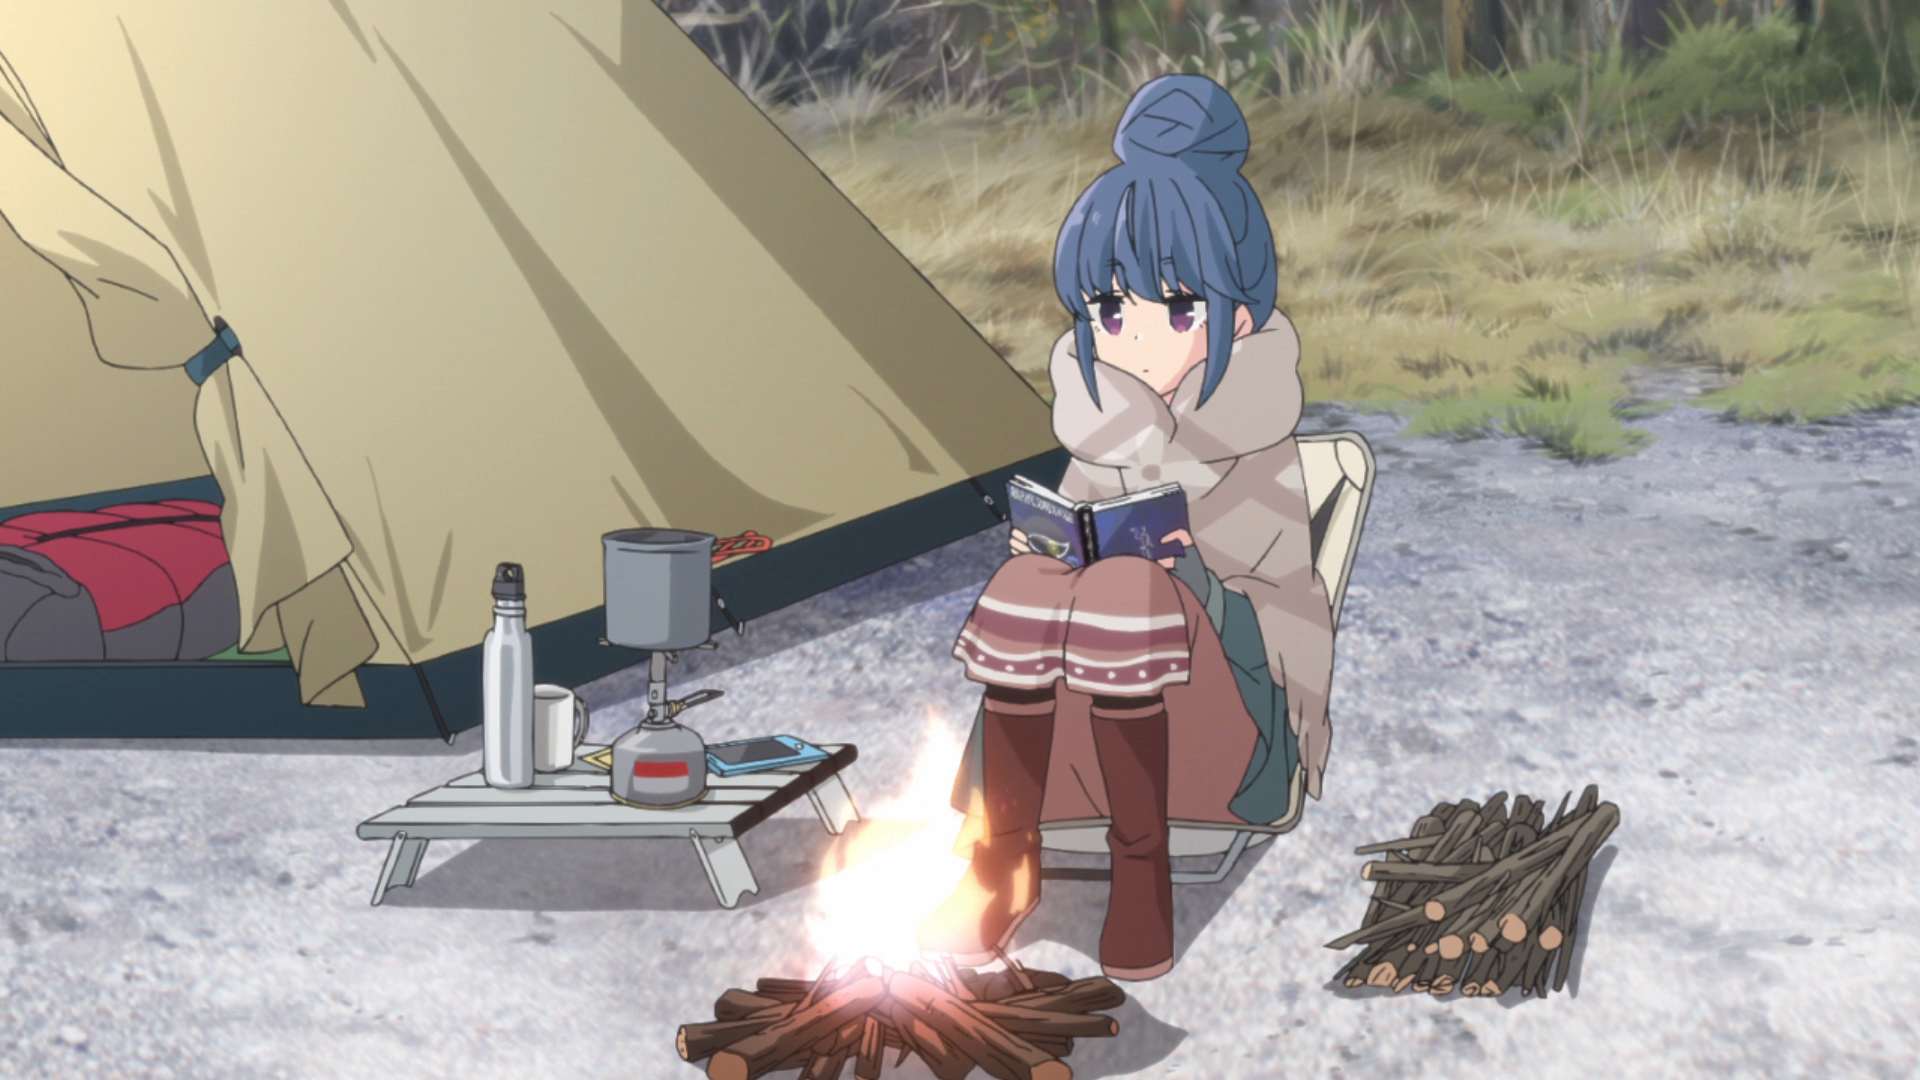 Surrounded by her tent and modern camping gear, Rin Shima enjoys some solo camping by reading a book near a campfire during a cold winter day in a scene from the 2018 Laid-Back Camp TV anime.